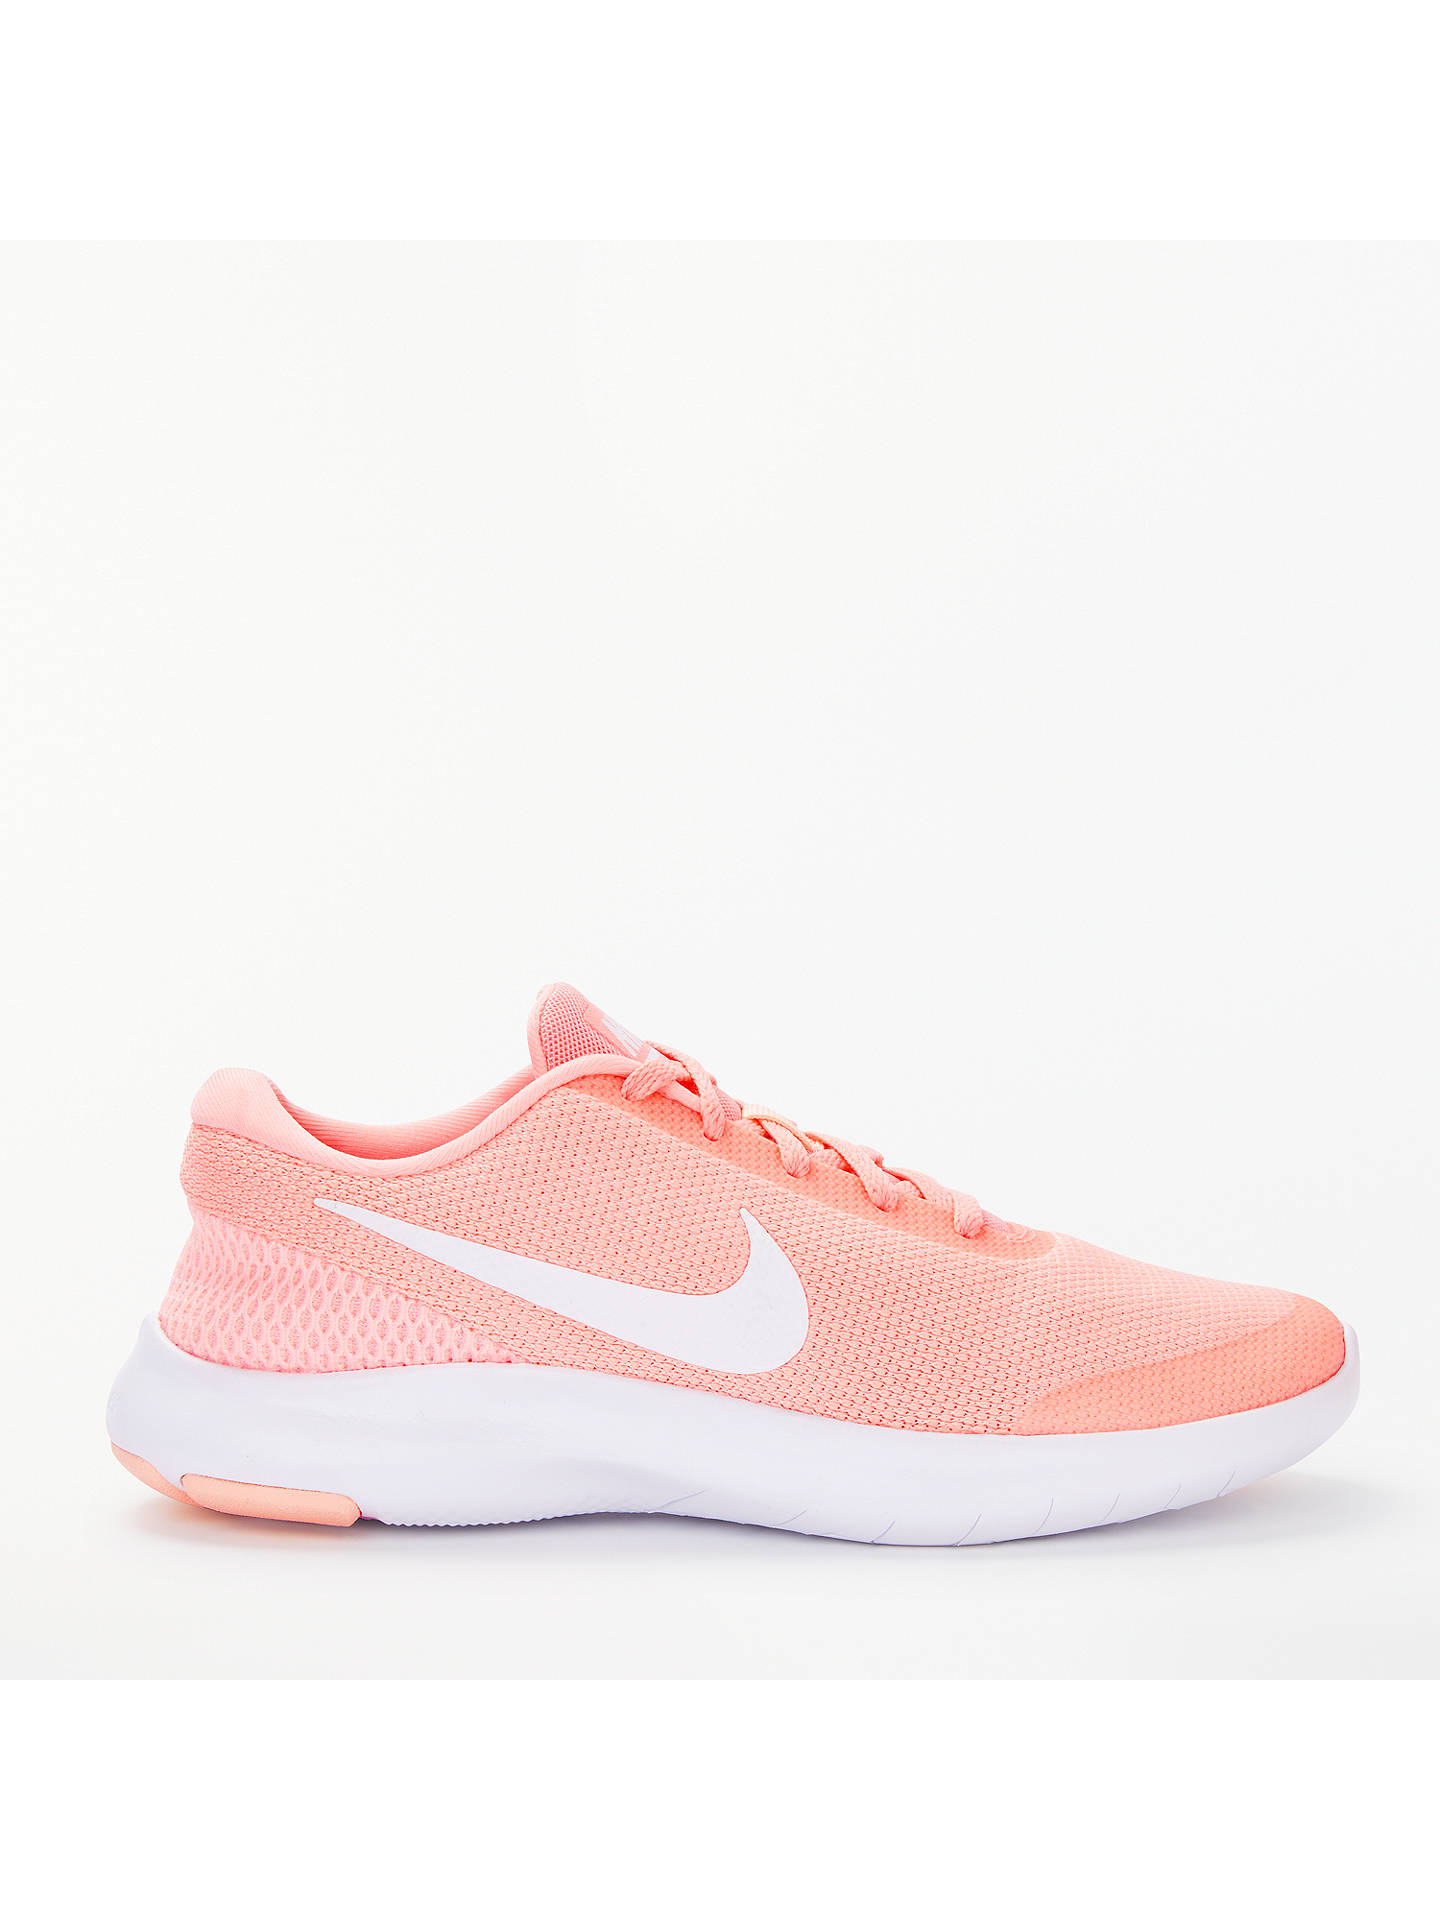 735e05956bde Buy Nike Flex Experience RN 7 Women s Running Shoes